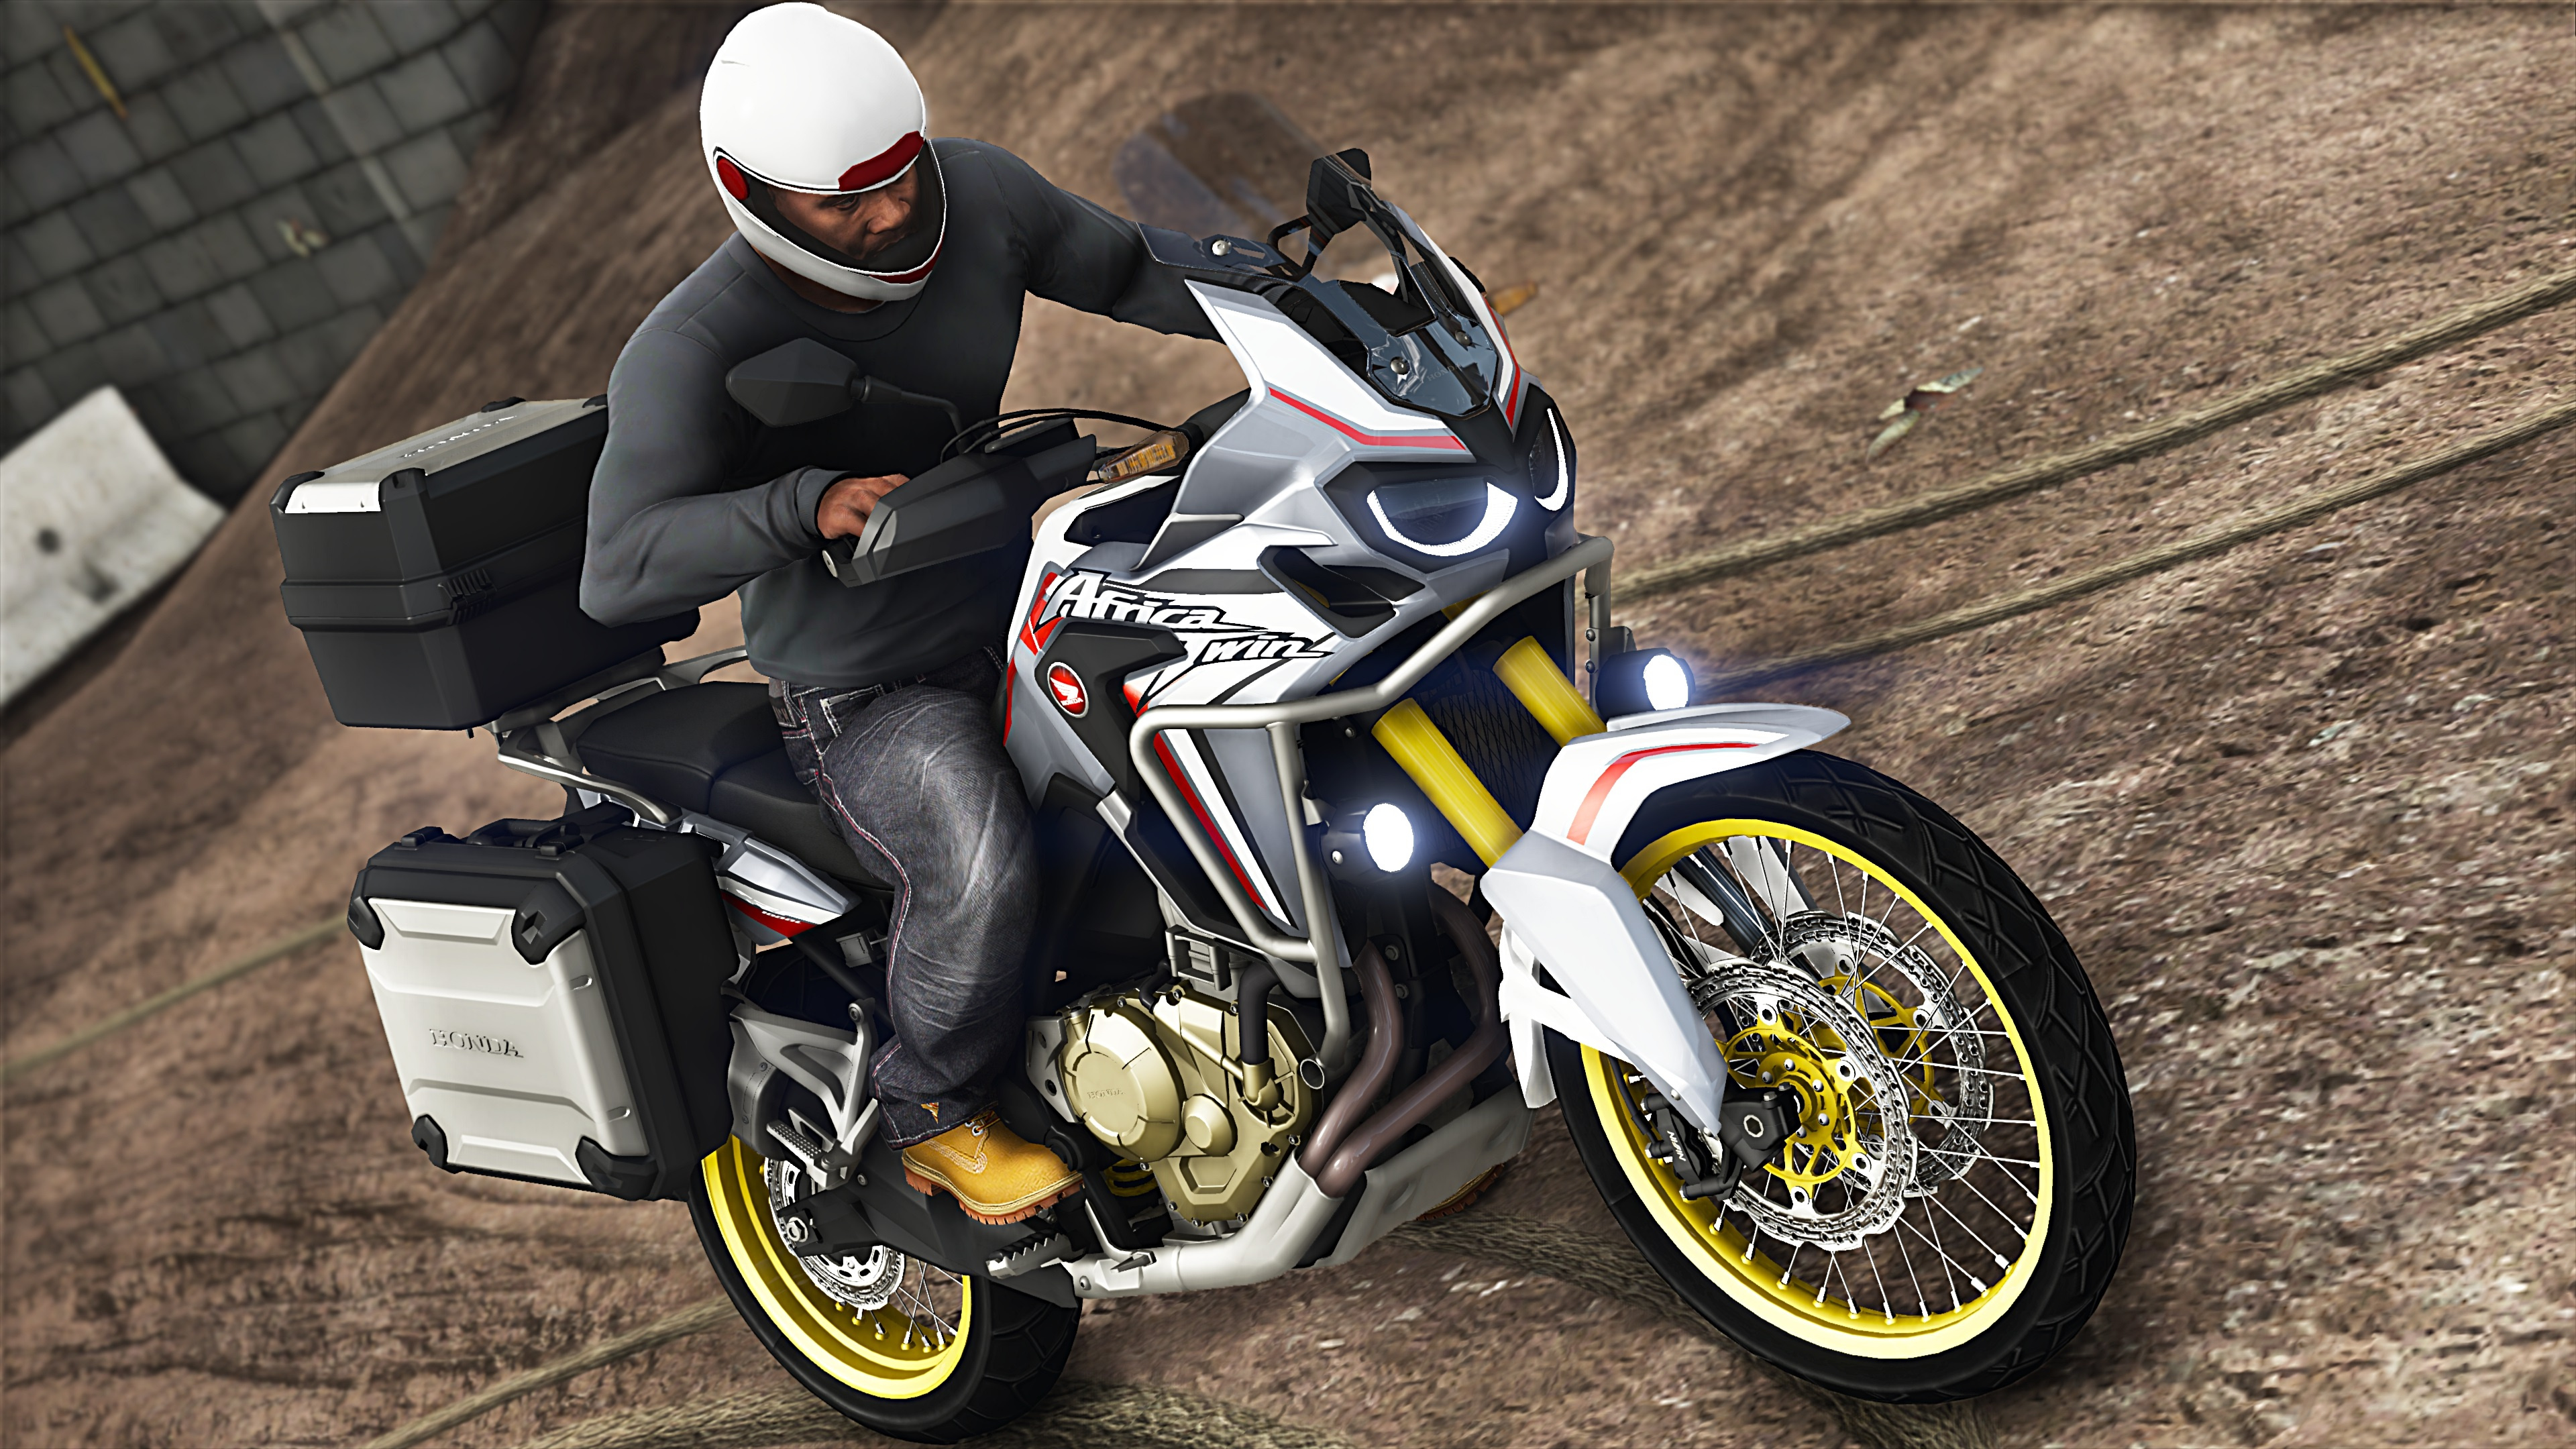 2017 honda crf1000l africa twin addons tuning gta5. Black Bedroom Furniture Sets. Home Design Ideas